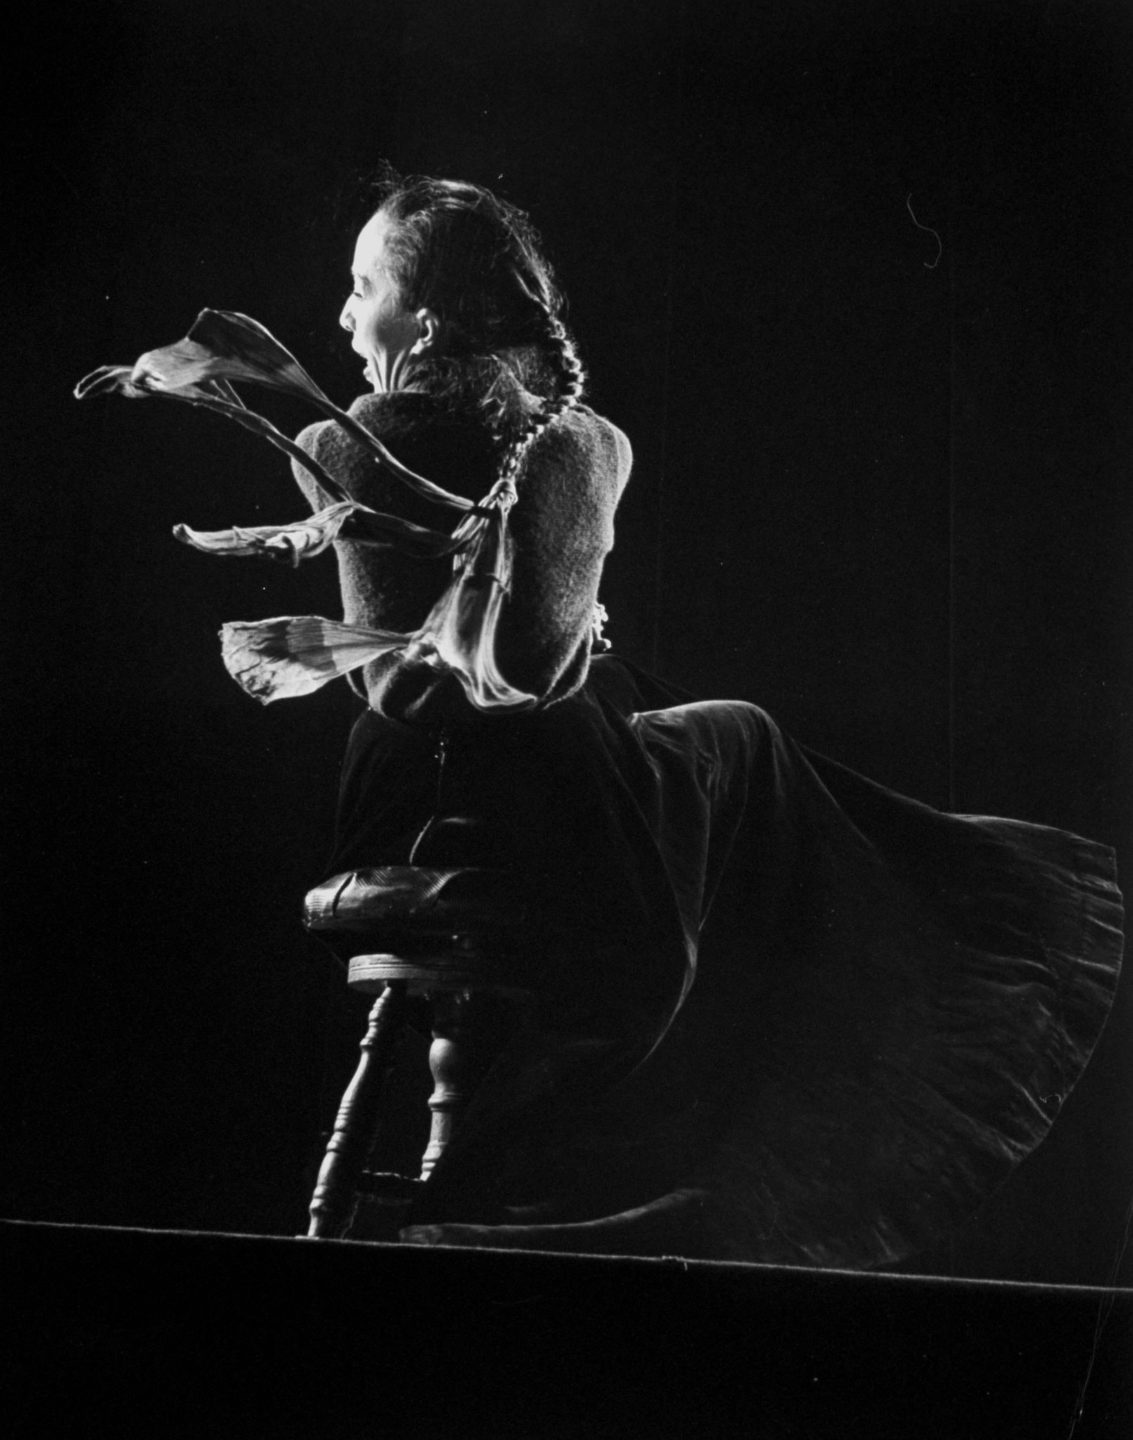 Carmelita Maracci. Photo by Gjon Mili.